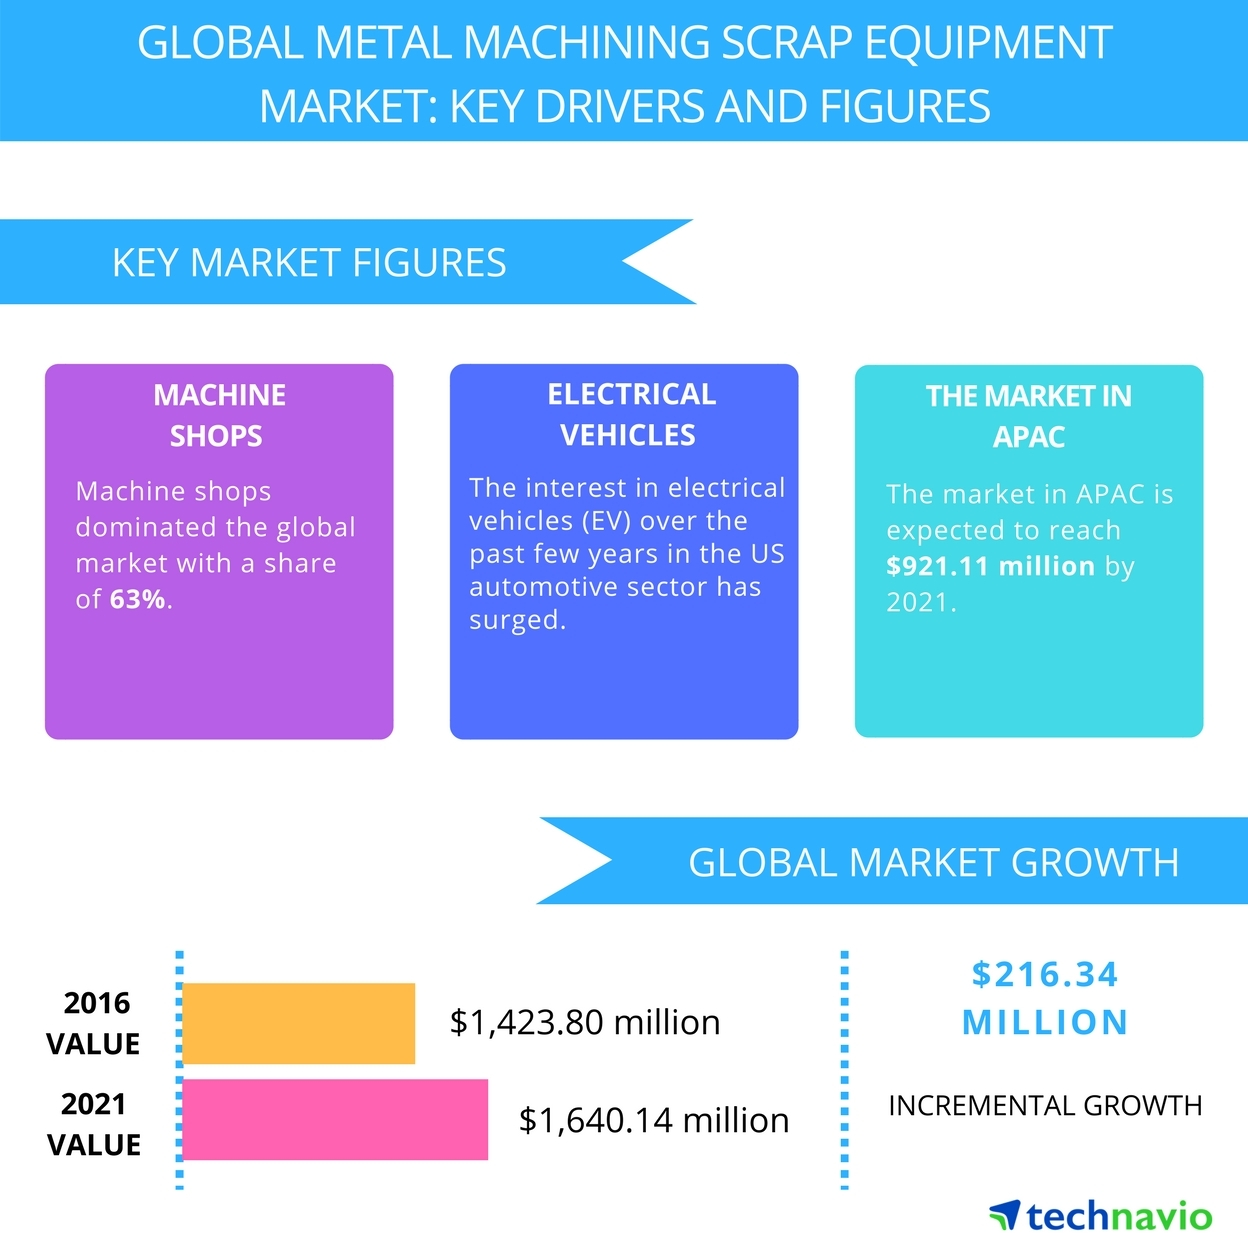 Technavio has published a new report on the global metal machining scrap equipment market from 2017-2021. (Graphic: Business Wire)